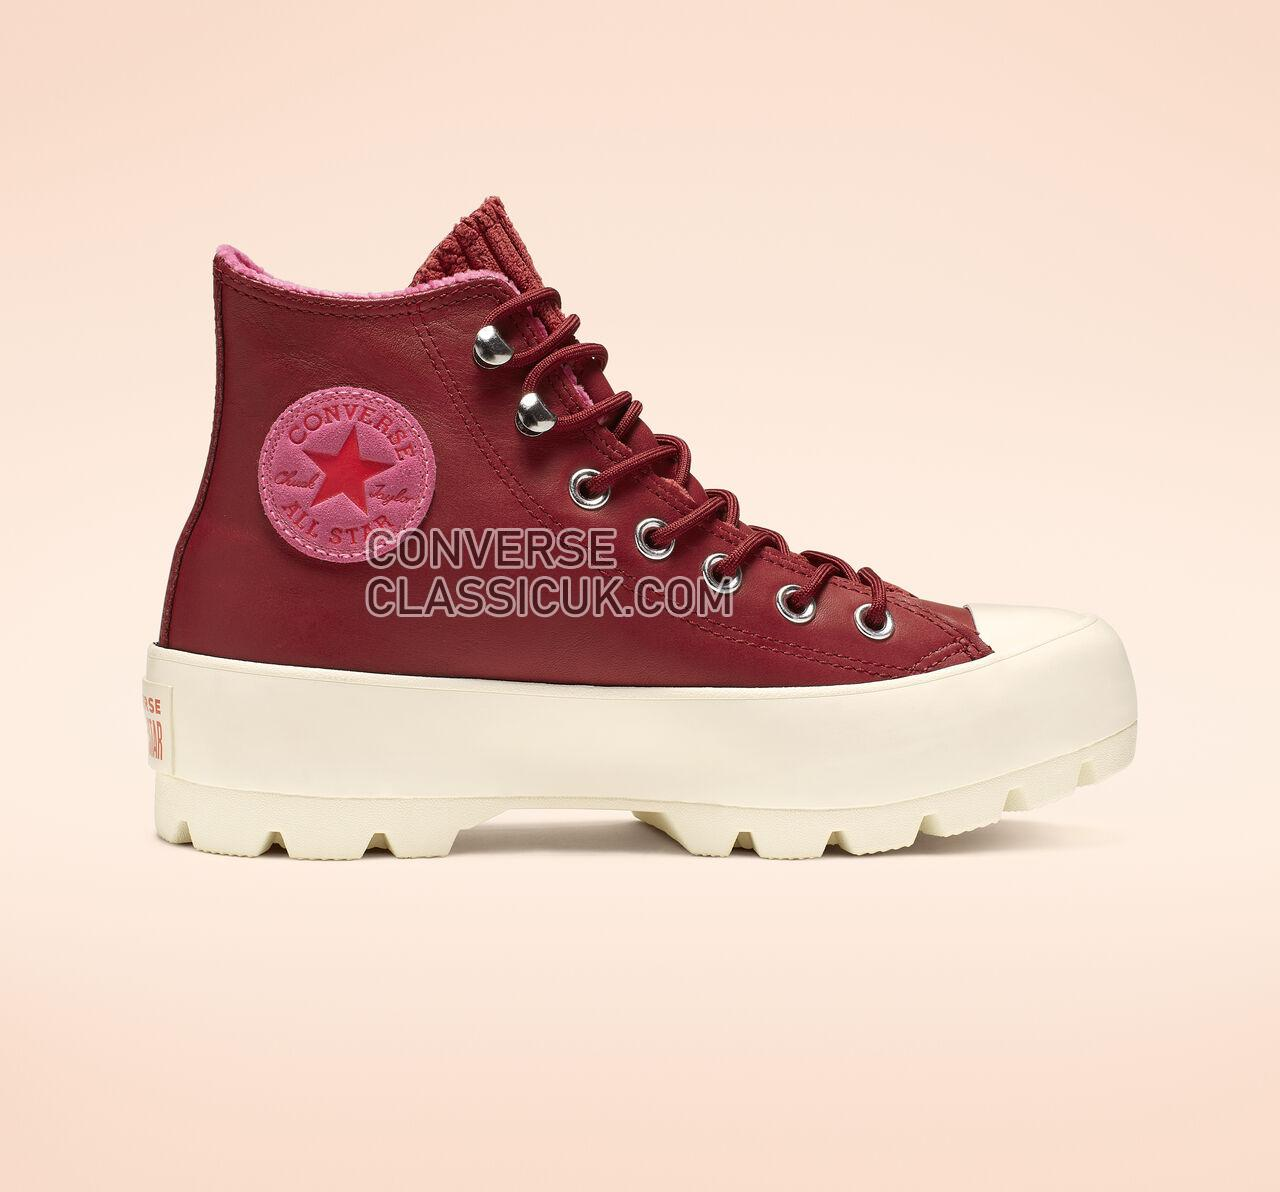 Converse Chuck Taylor All Star Lugged Waterproof Leather High Top Womens 565007C Back Alley Brick/Habanero Red Shoes